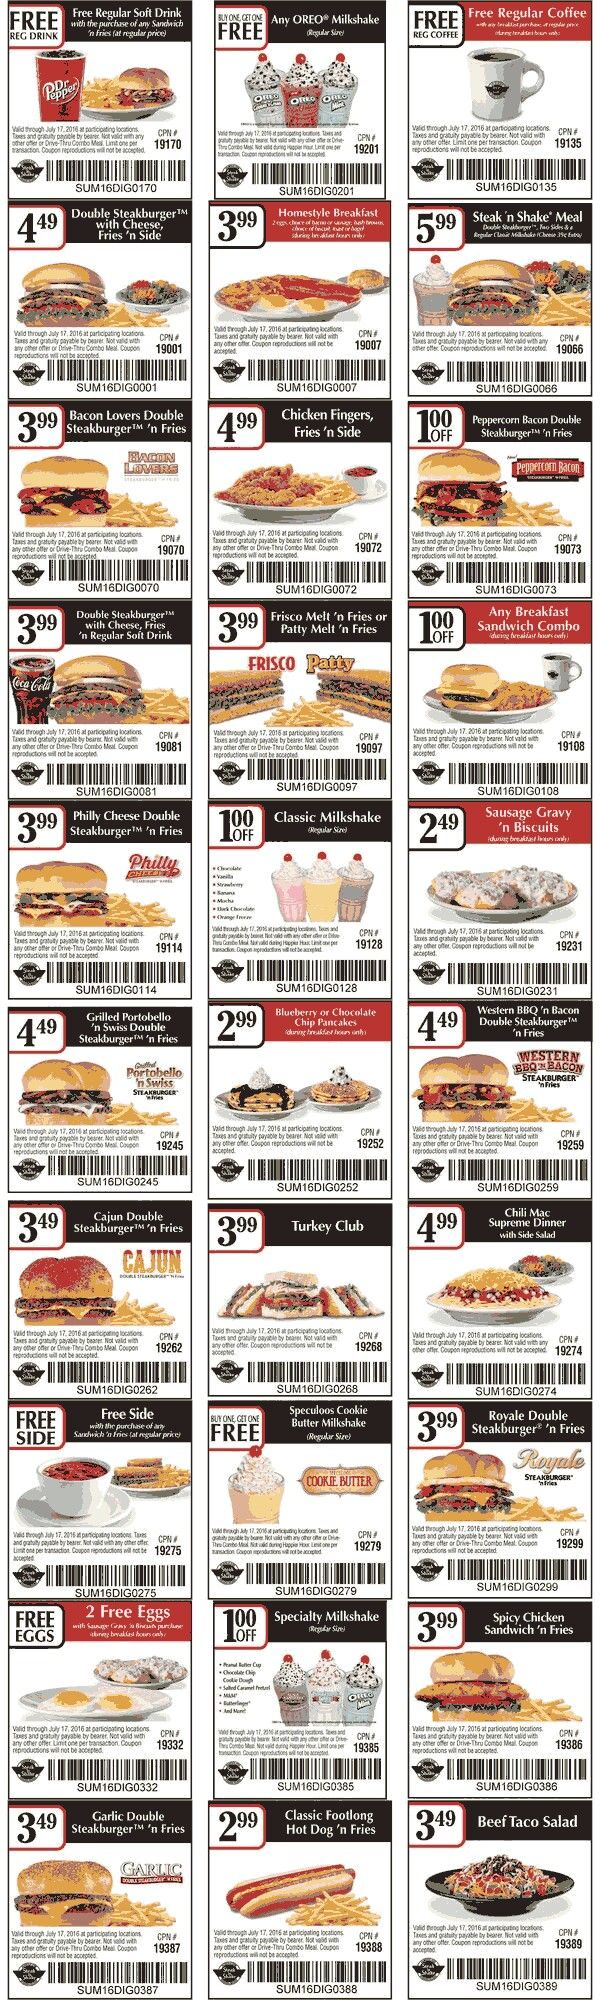 Steak and shake coupons september 2019